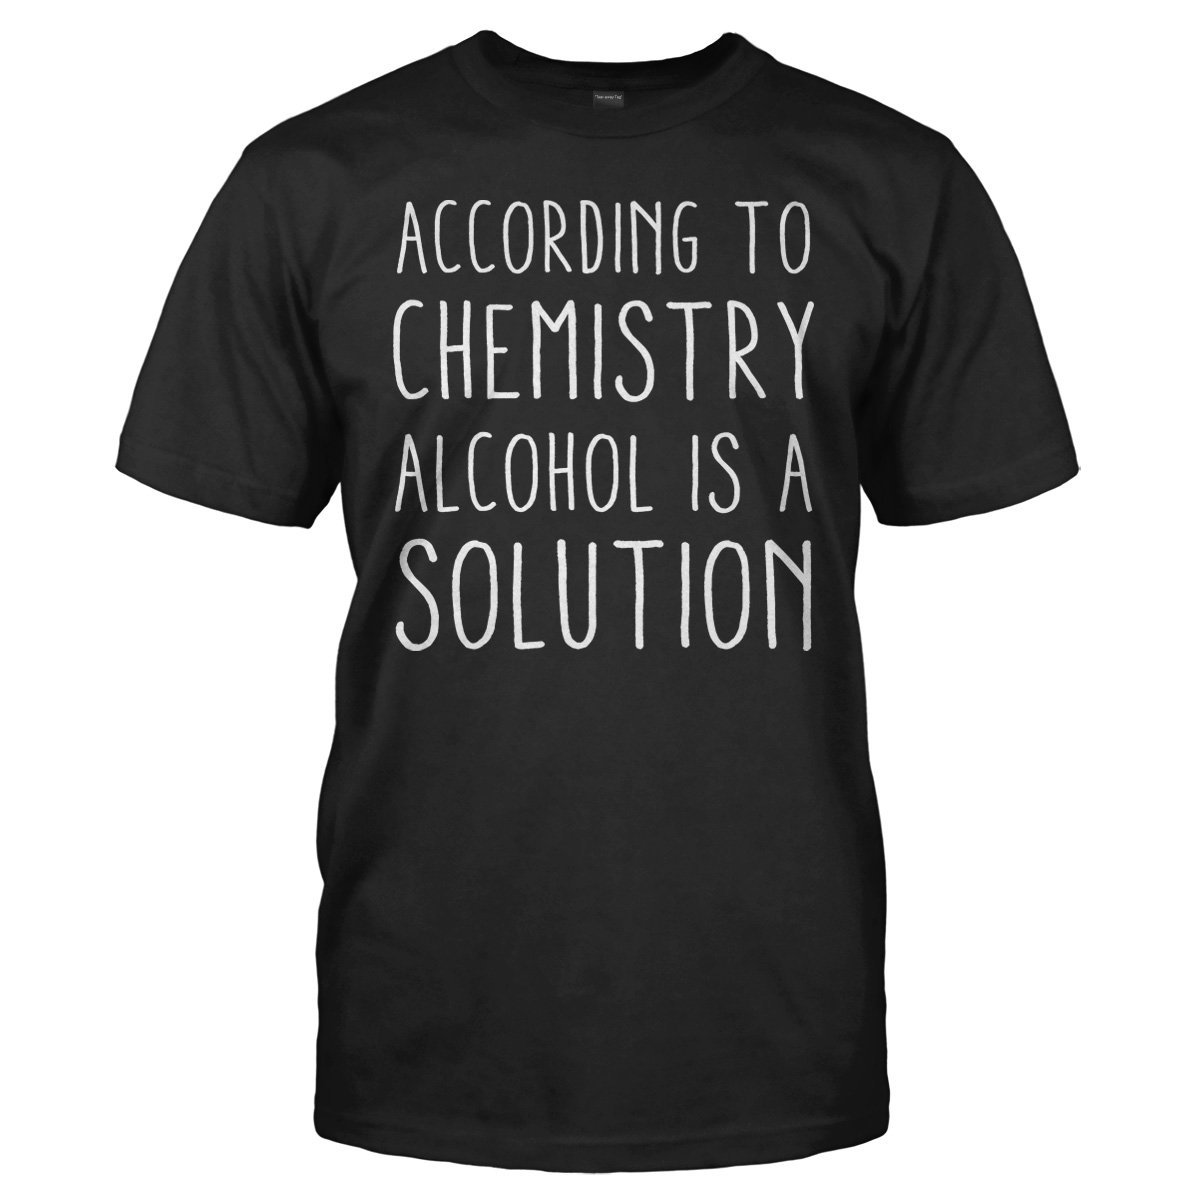 According To Chemistry, Alcohol Is A Solution - T Shirt